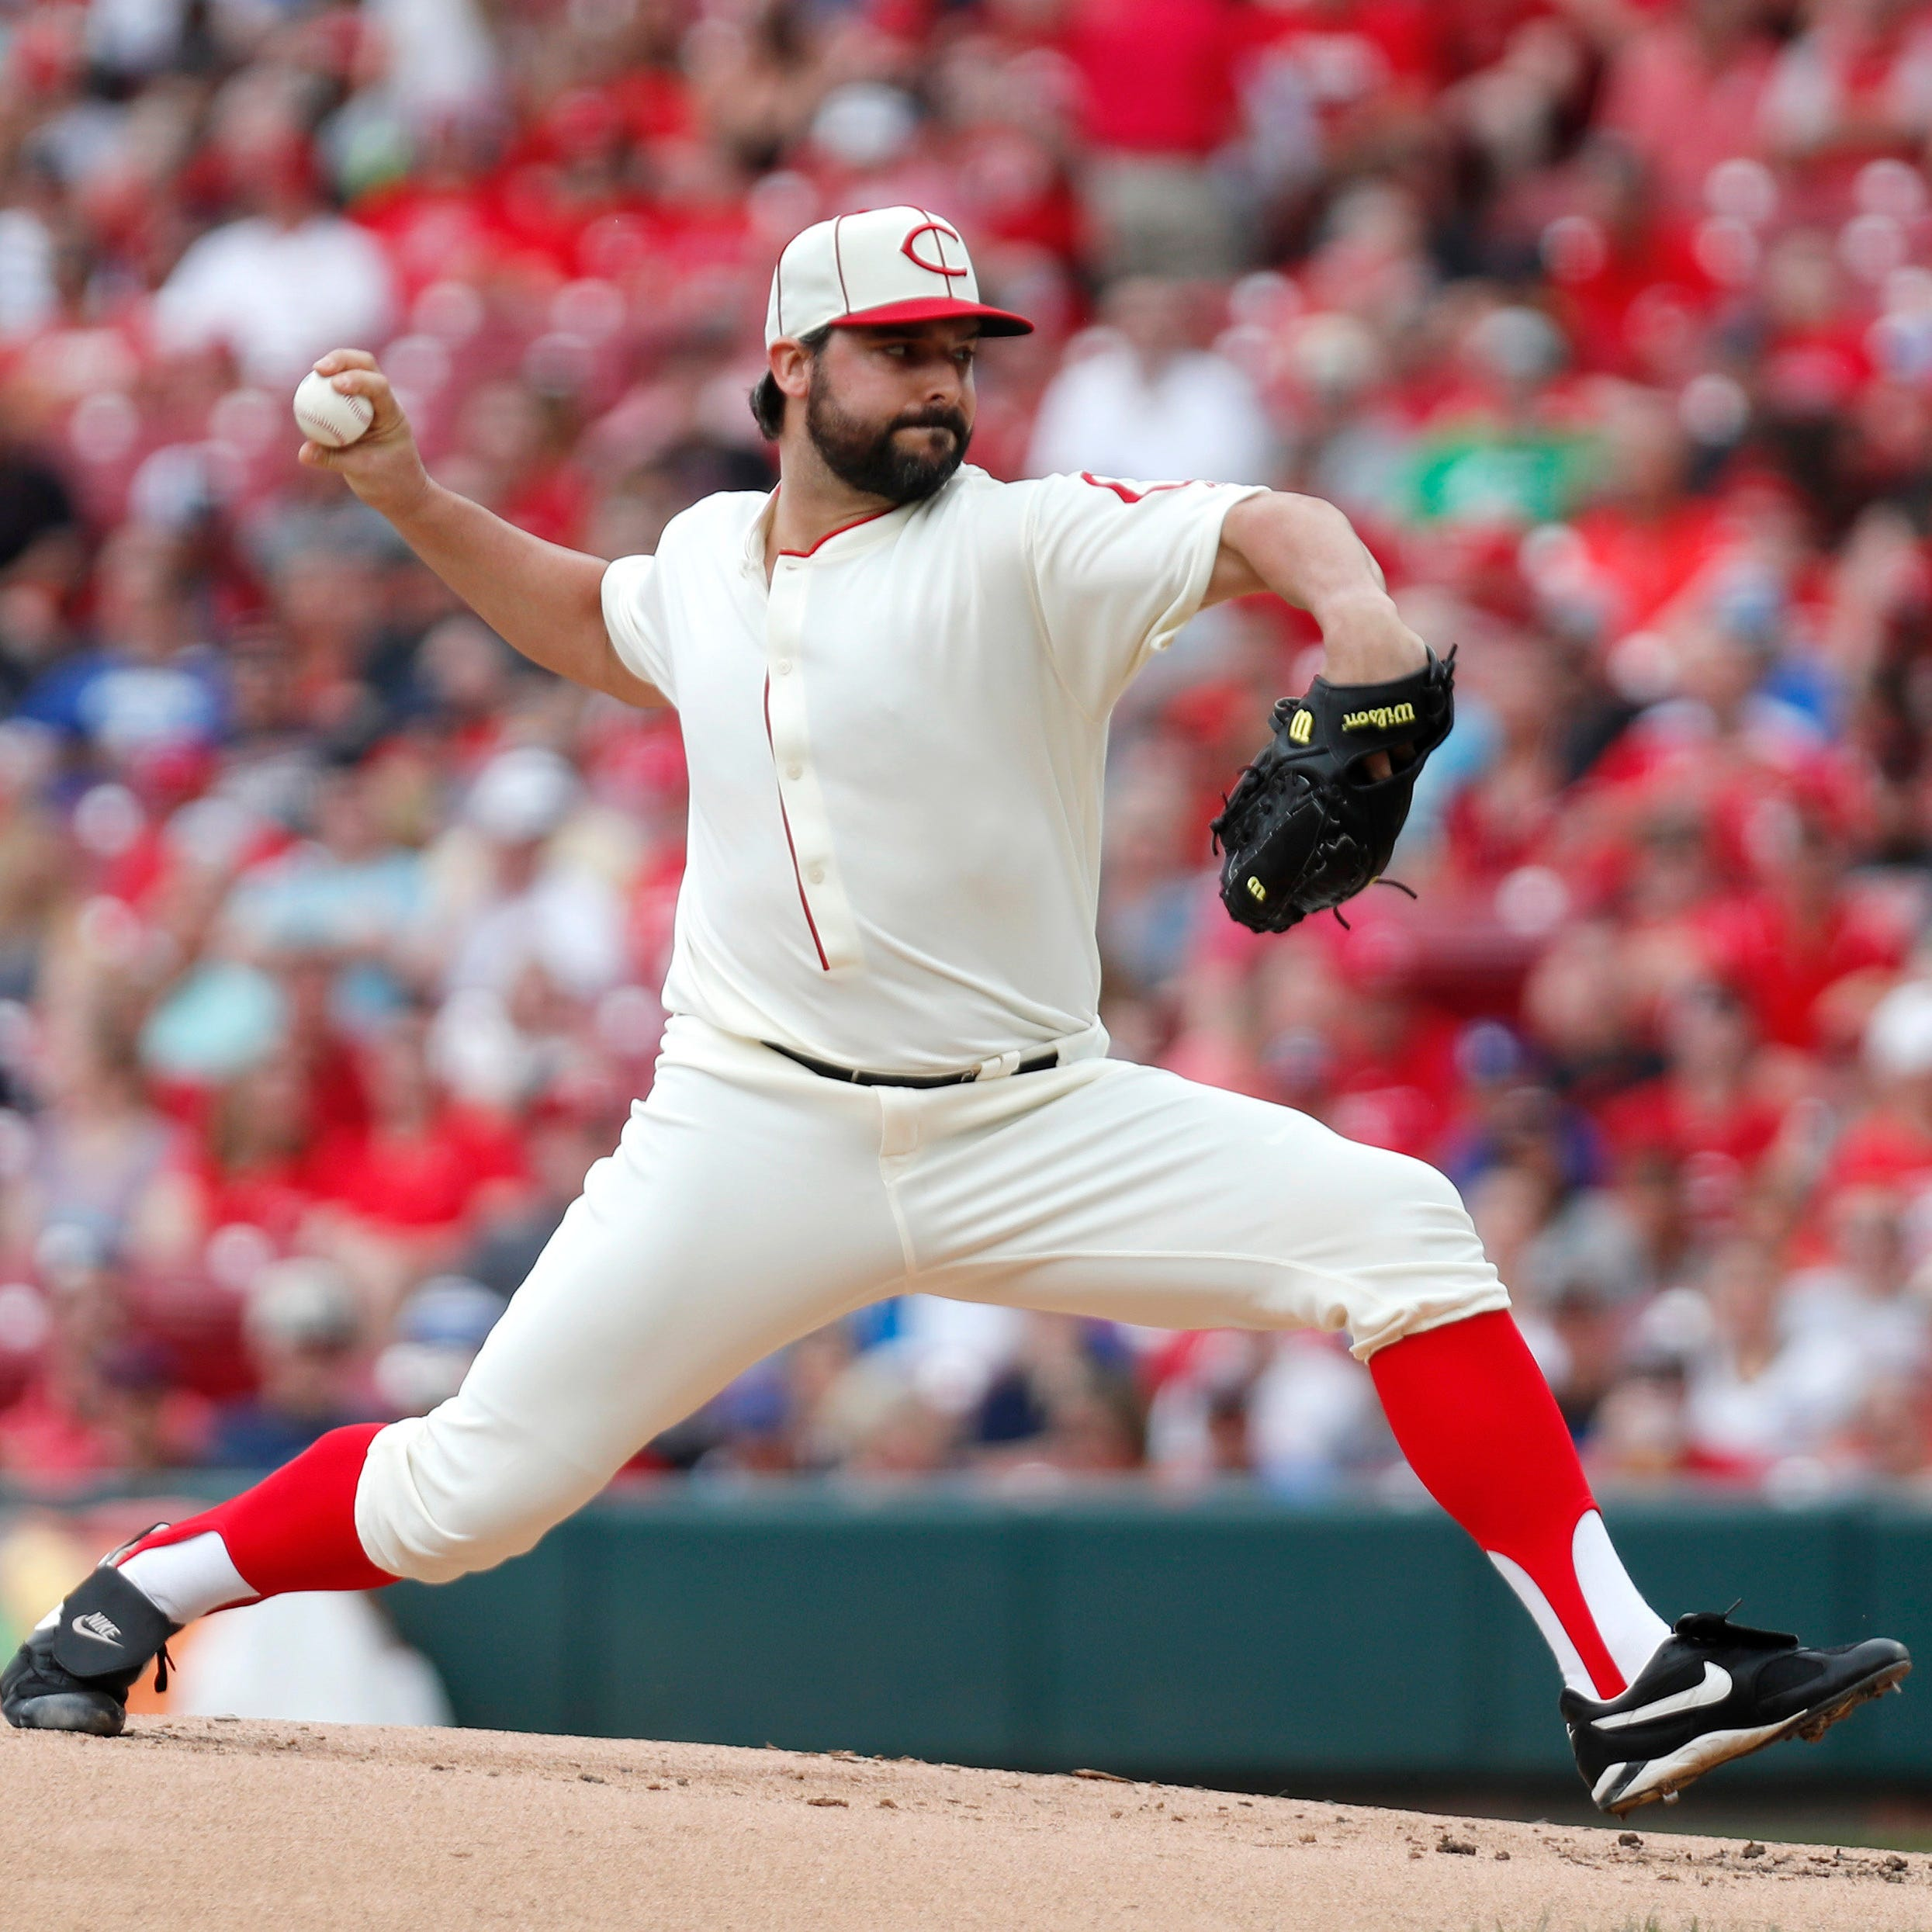 Tanner Roark expresses frustration about early hook in Reds loss to Dodgers